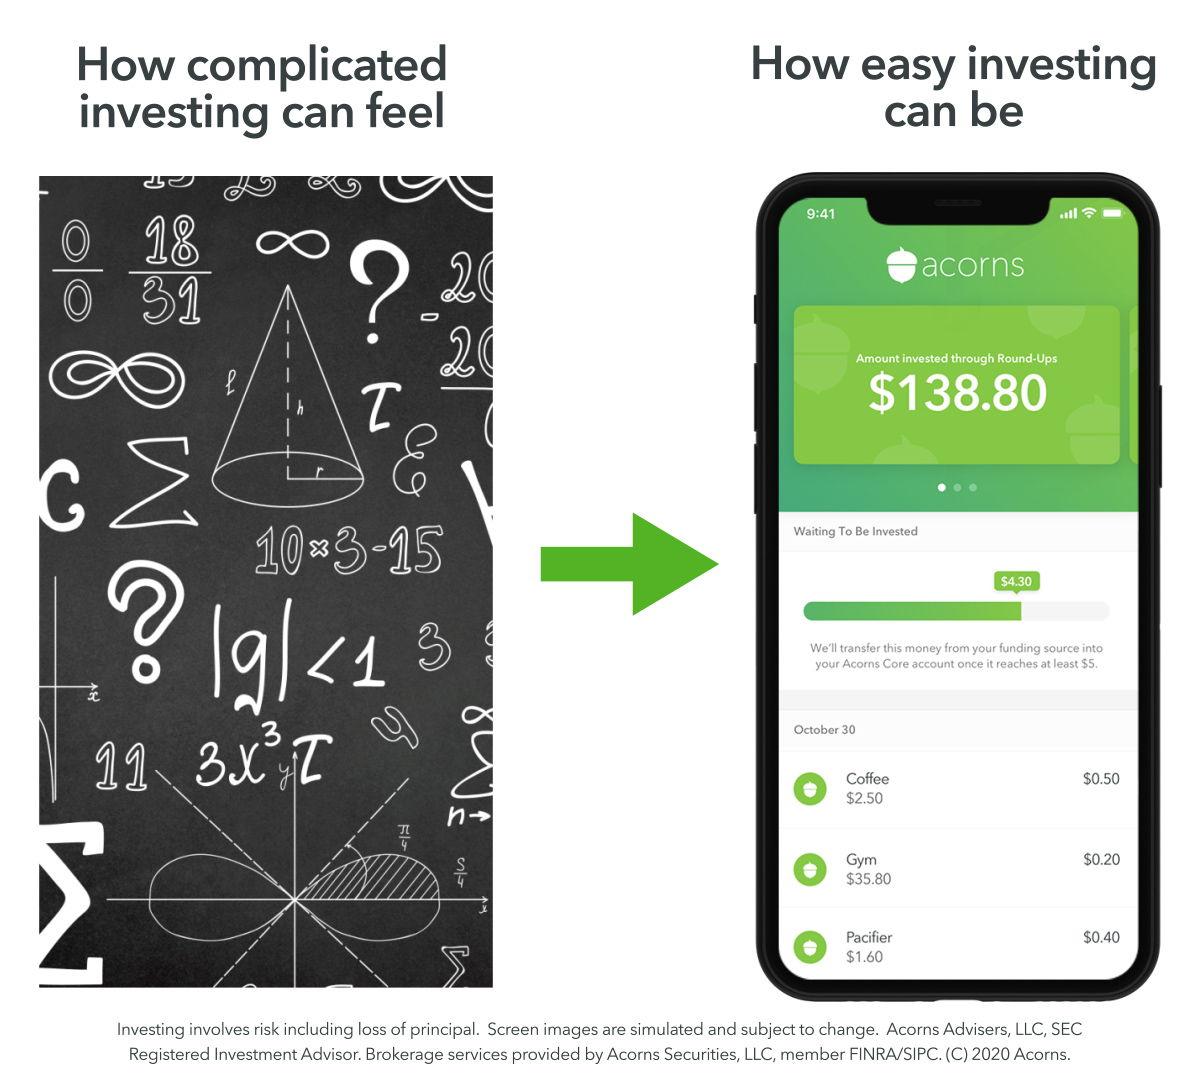 Acorns to start investing and make $5 instantly